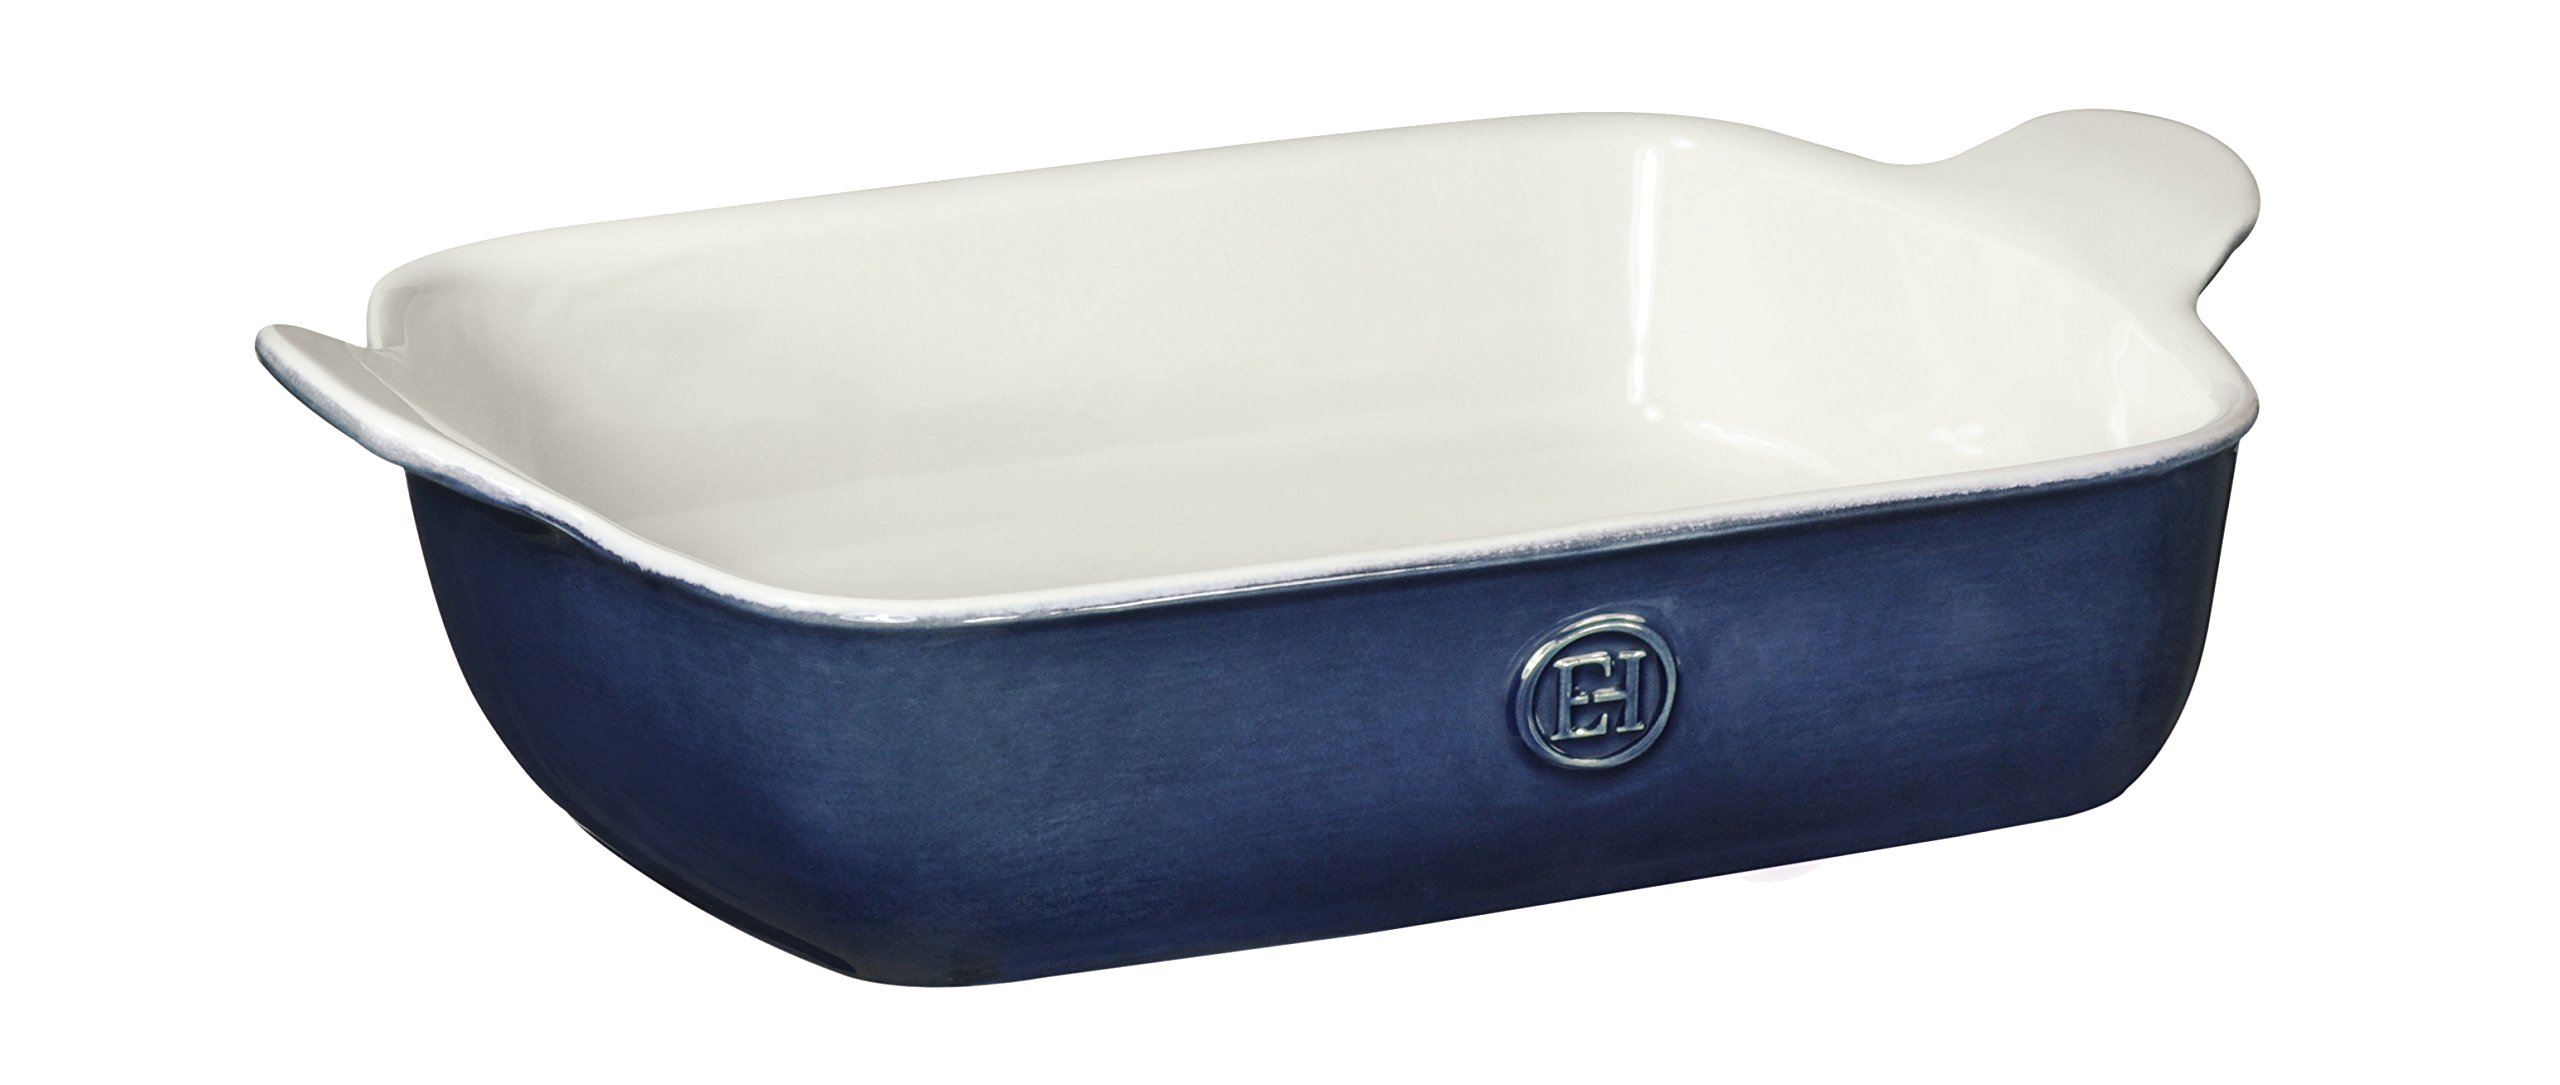 Emile Henry Made In France HR Modern Classics Small Rectangular Baker, 11 x 8'', Blue